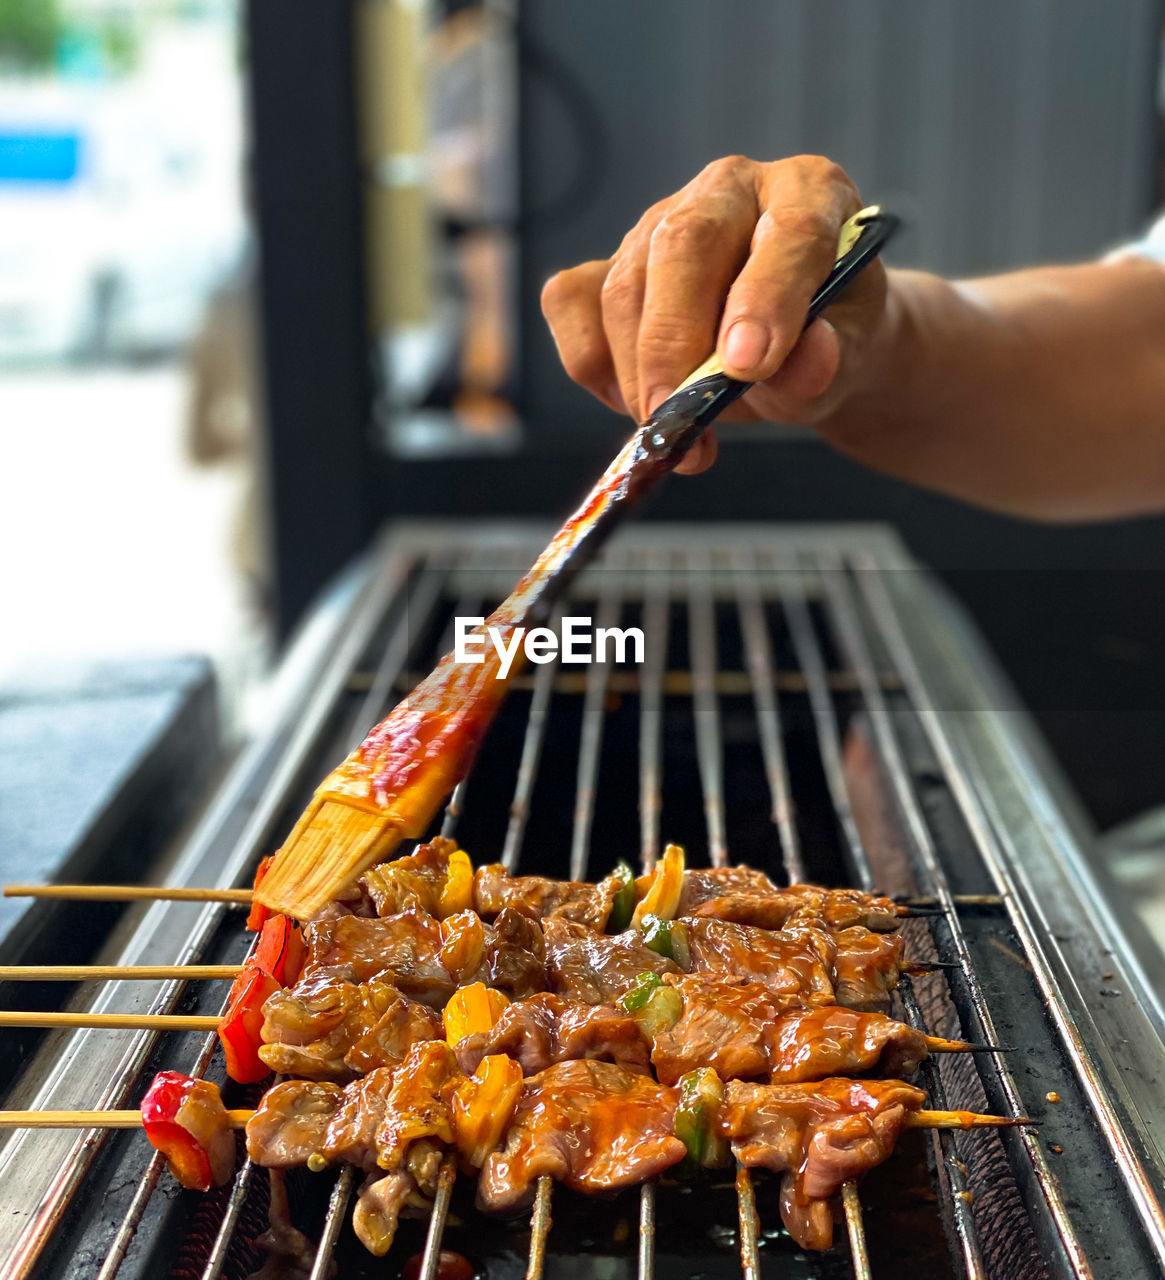 CROPPED IMAGE OF PERSON PREPARING FOOD ON BARBECUE